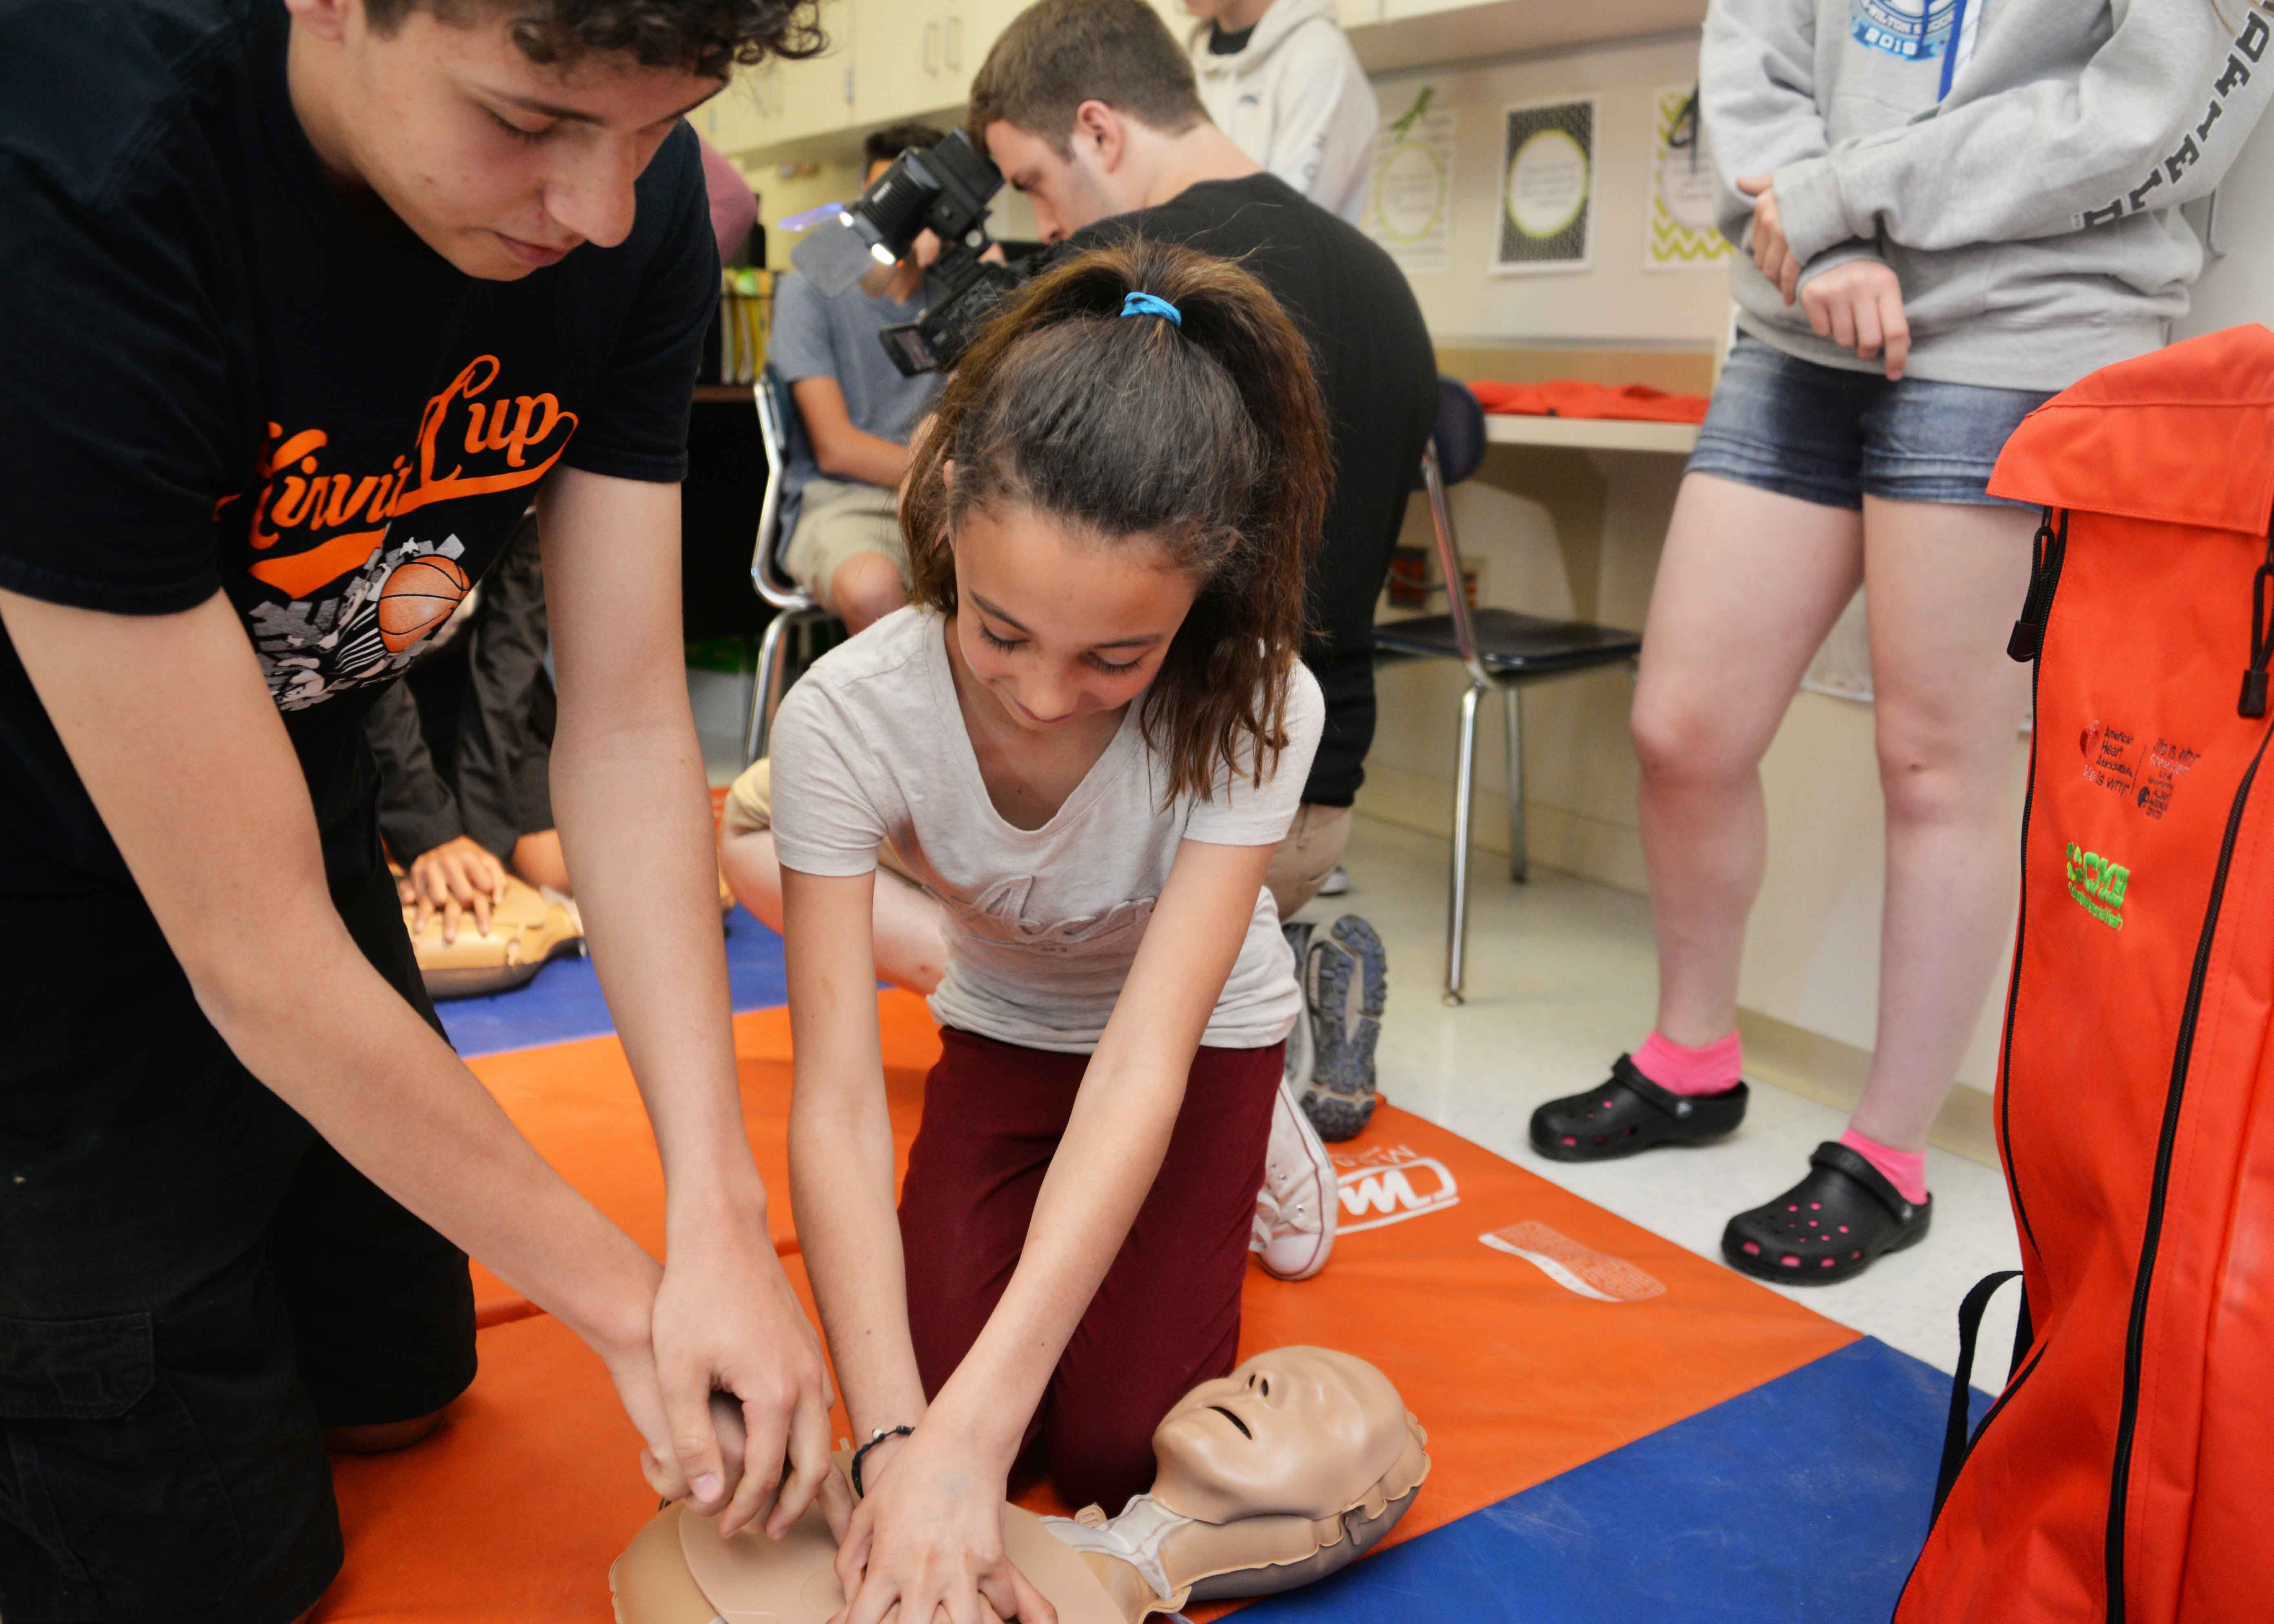 Student shows younger student CPR